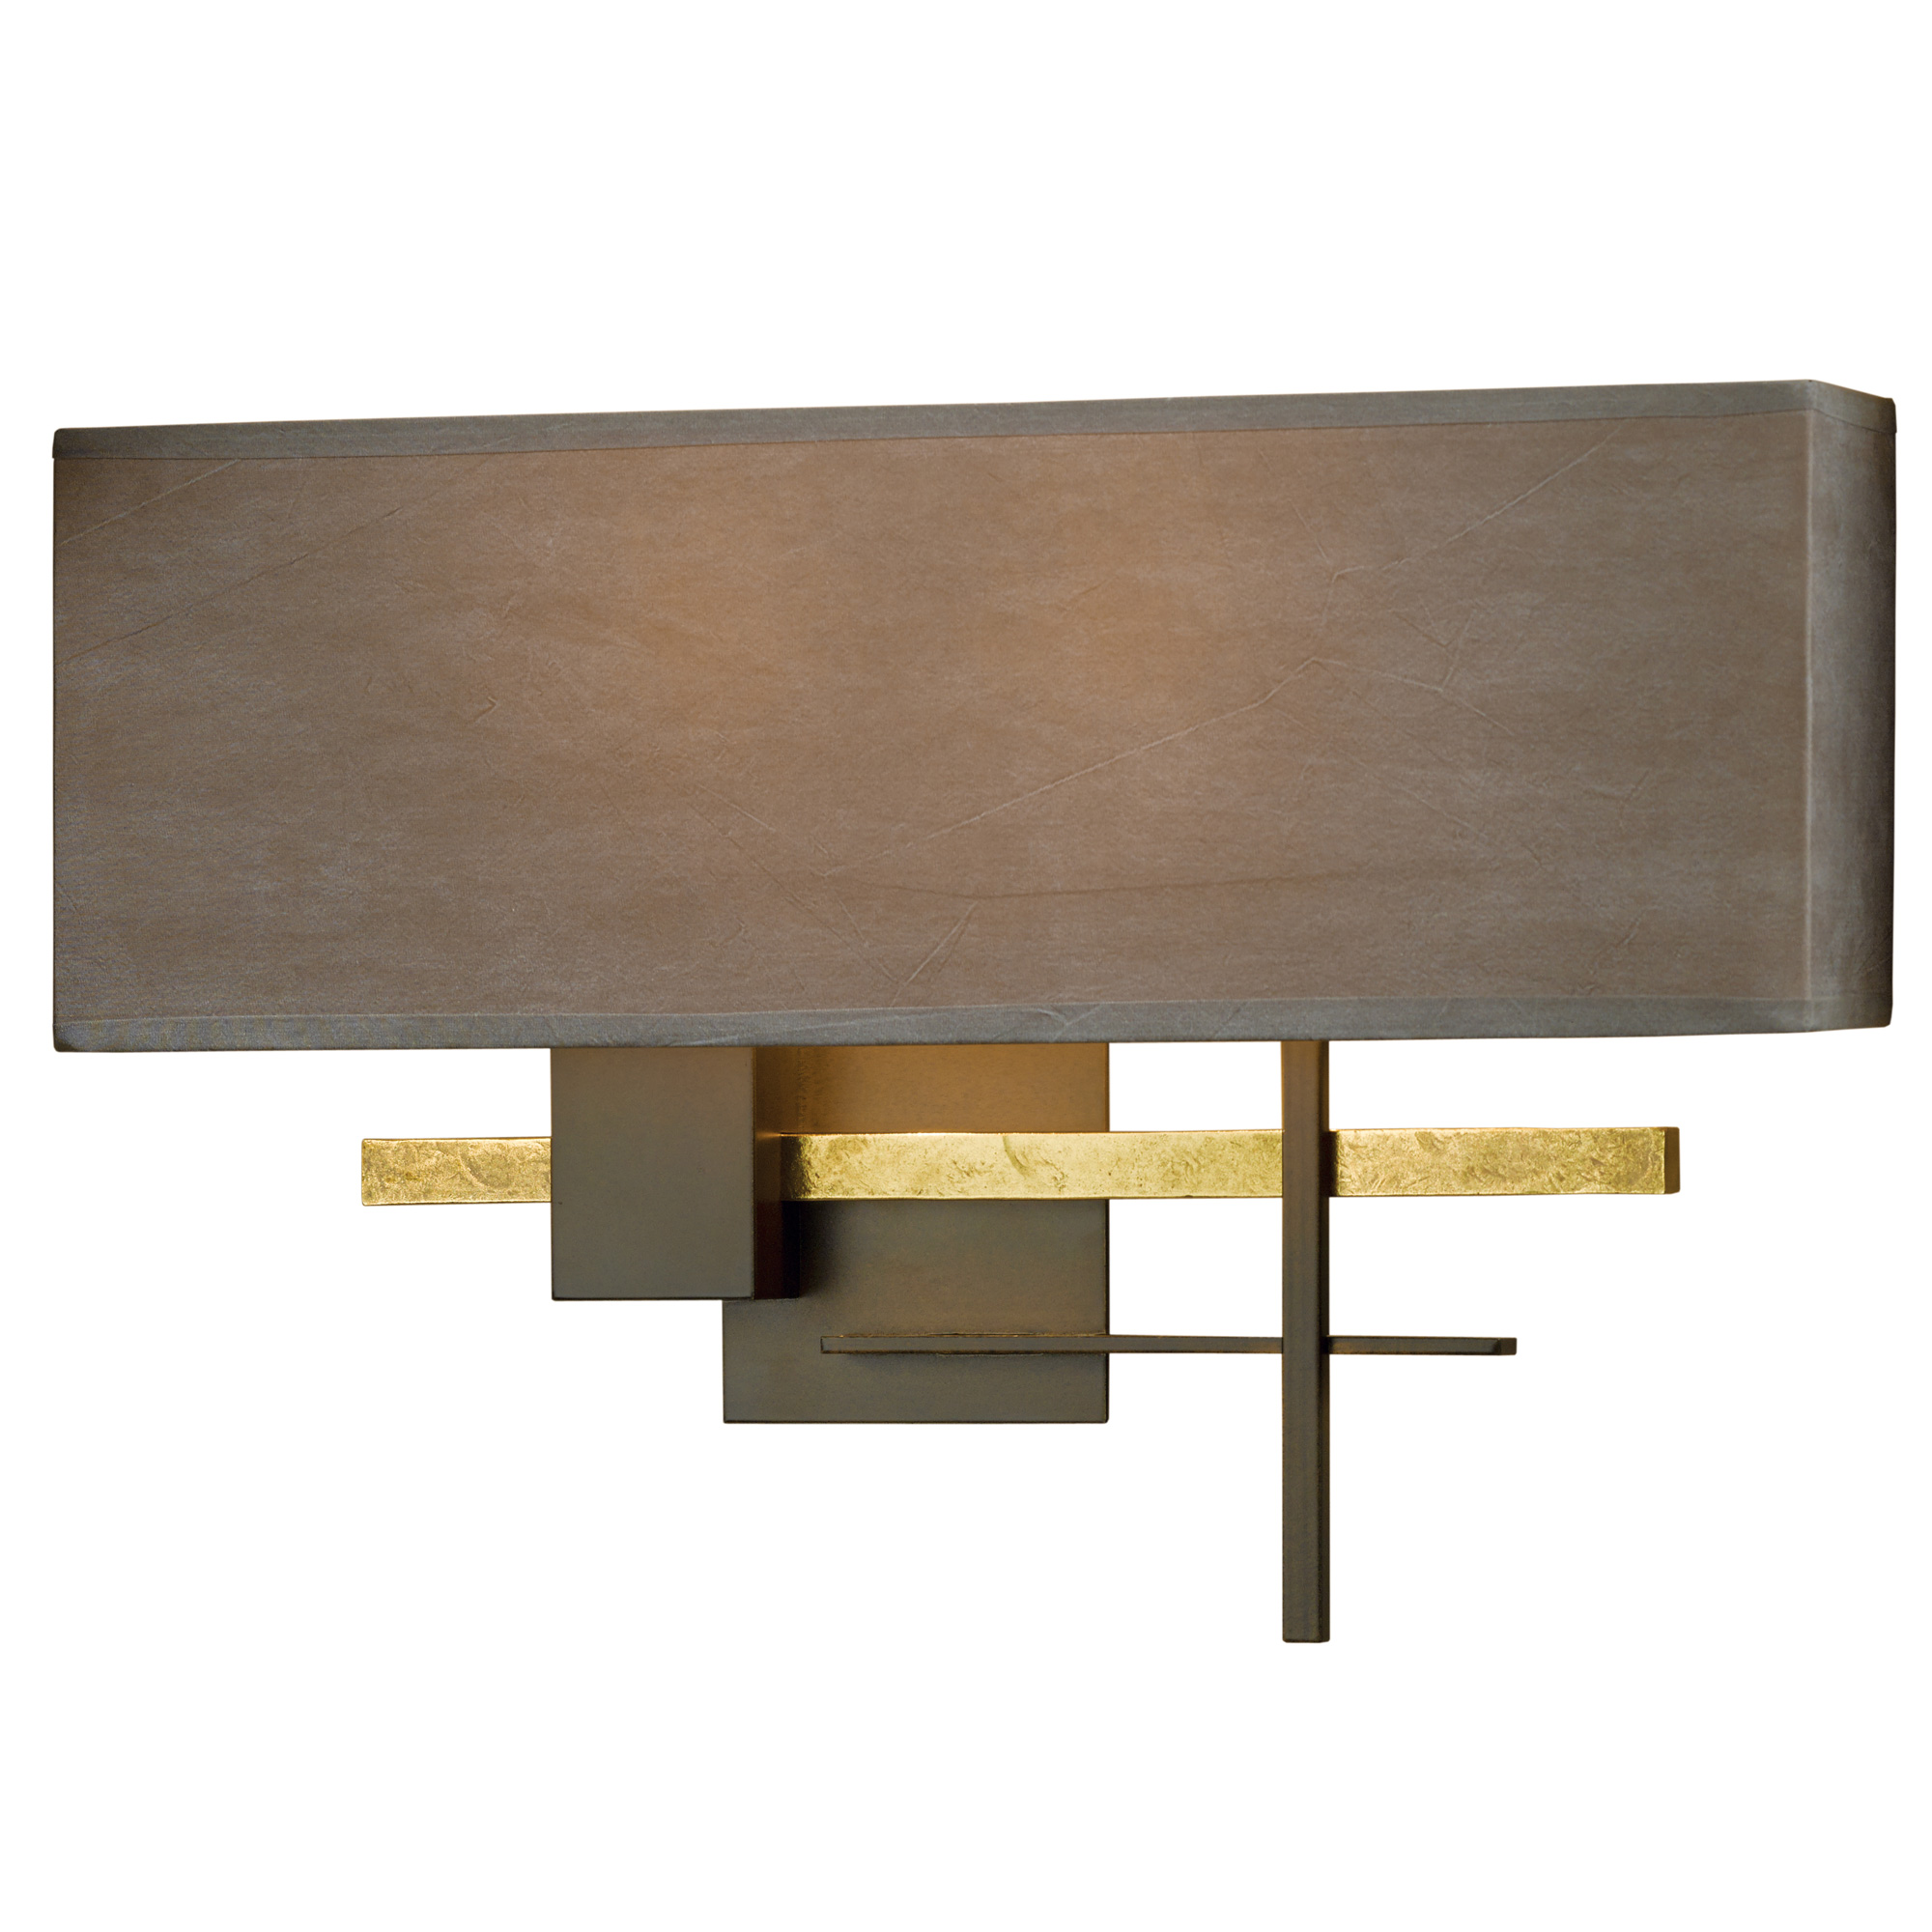 cosmo wall sconce brass by hubbardton forge - Hubbardton Forge